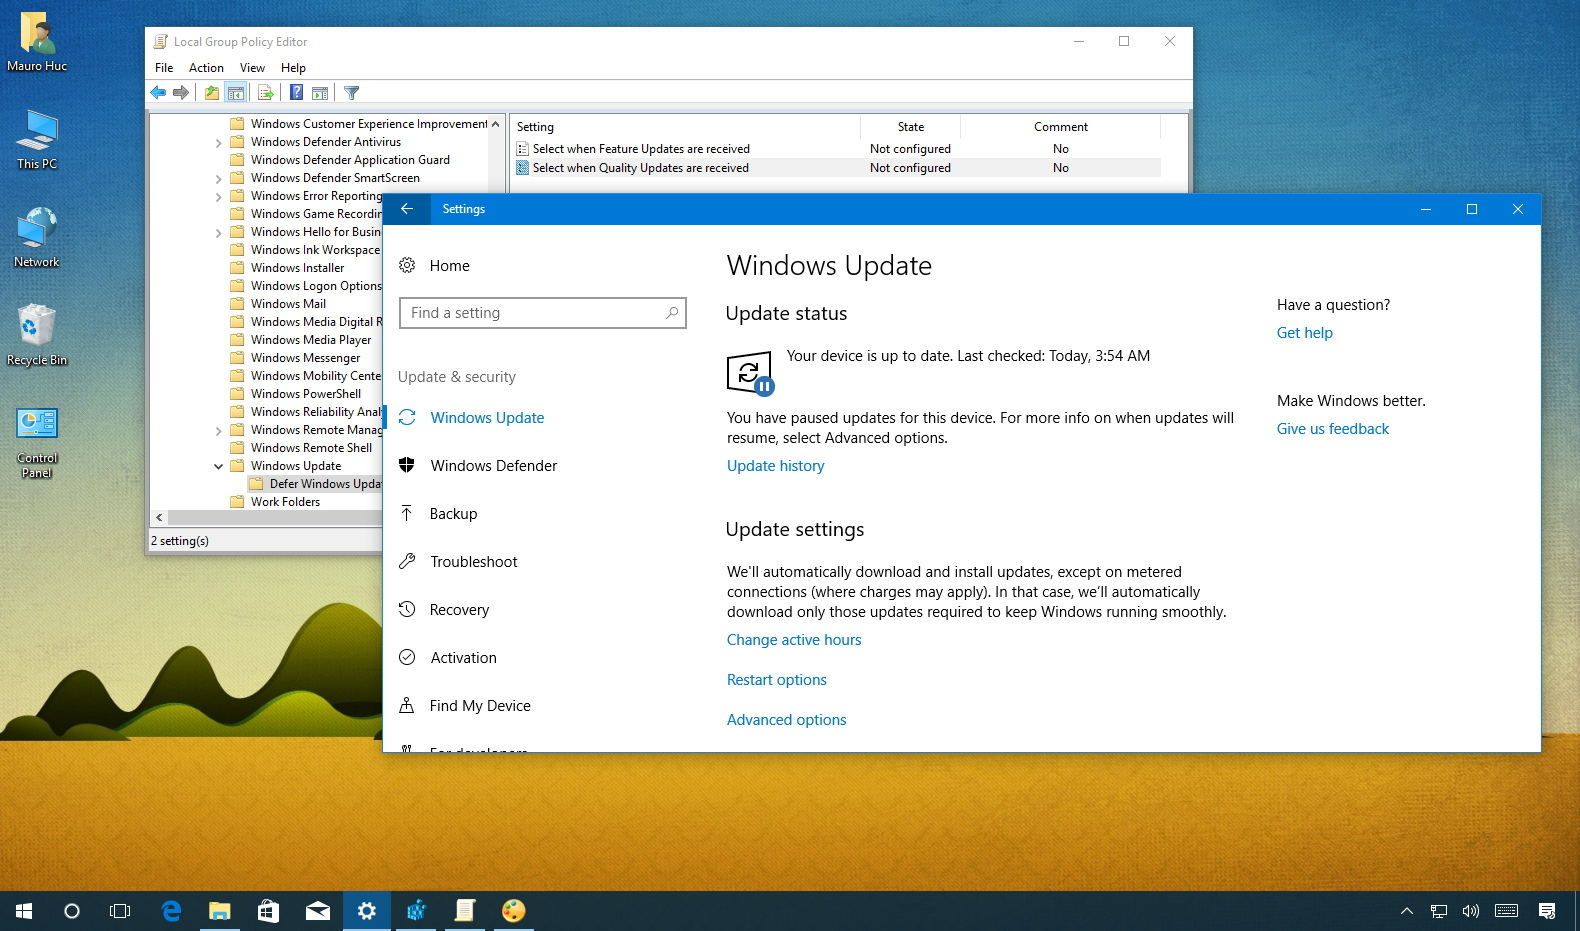 control windows 10 updates with group policy